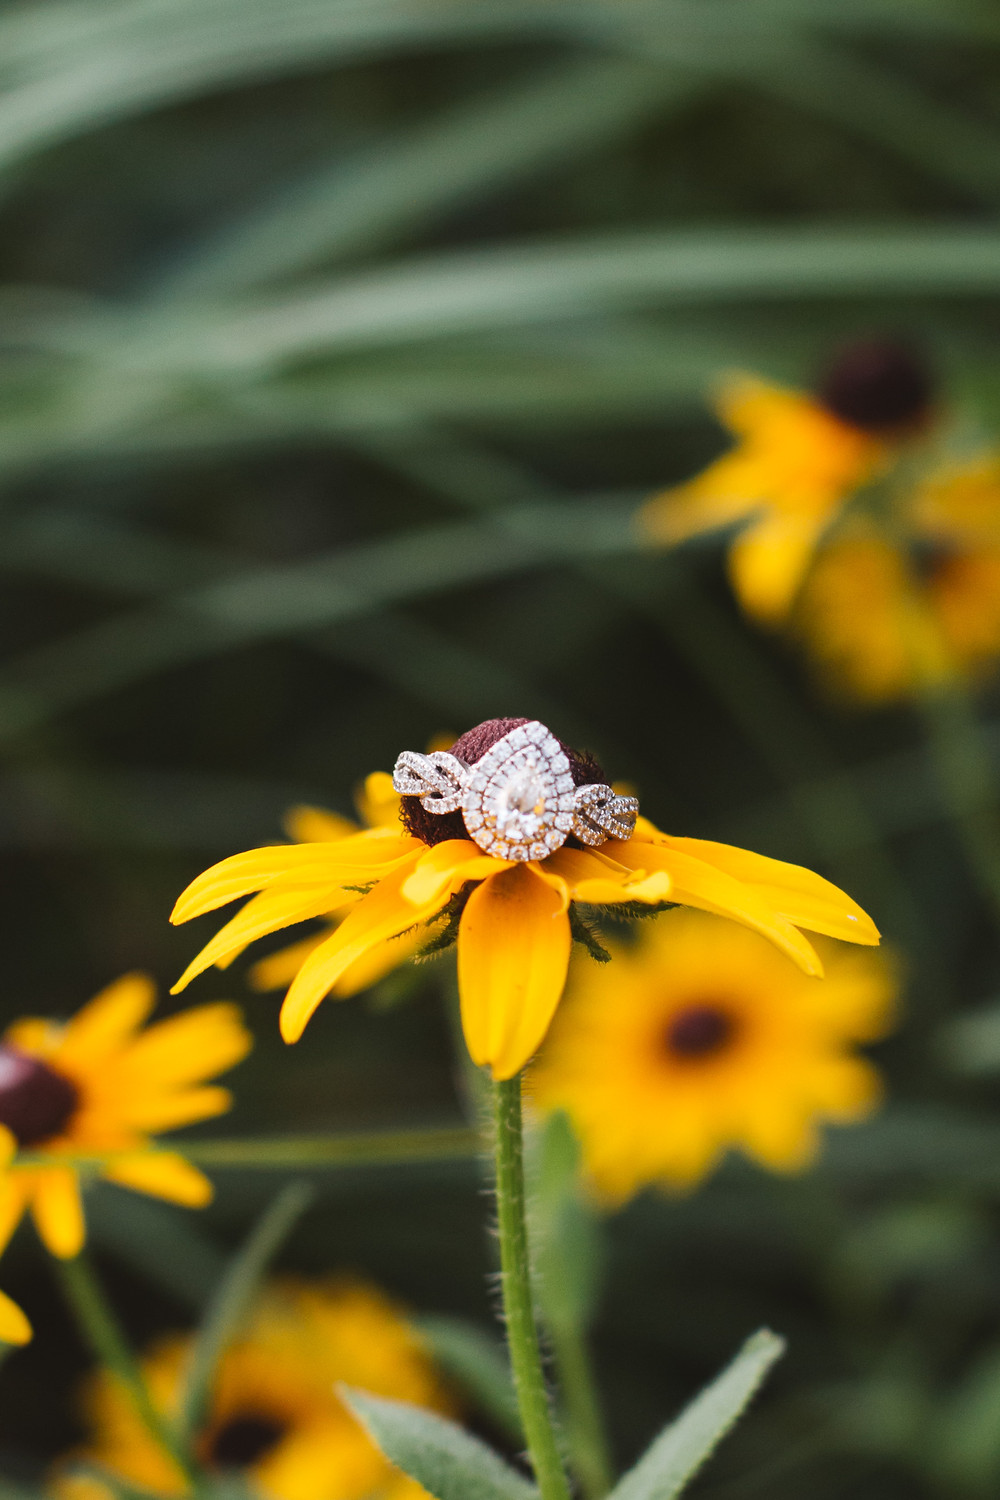 Engagement Ring on Yellow Flower